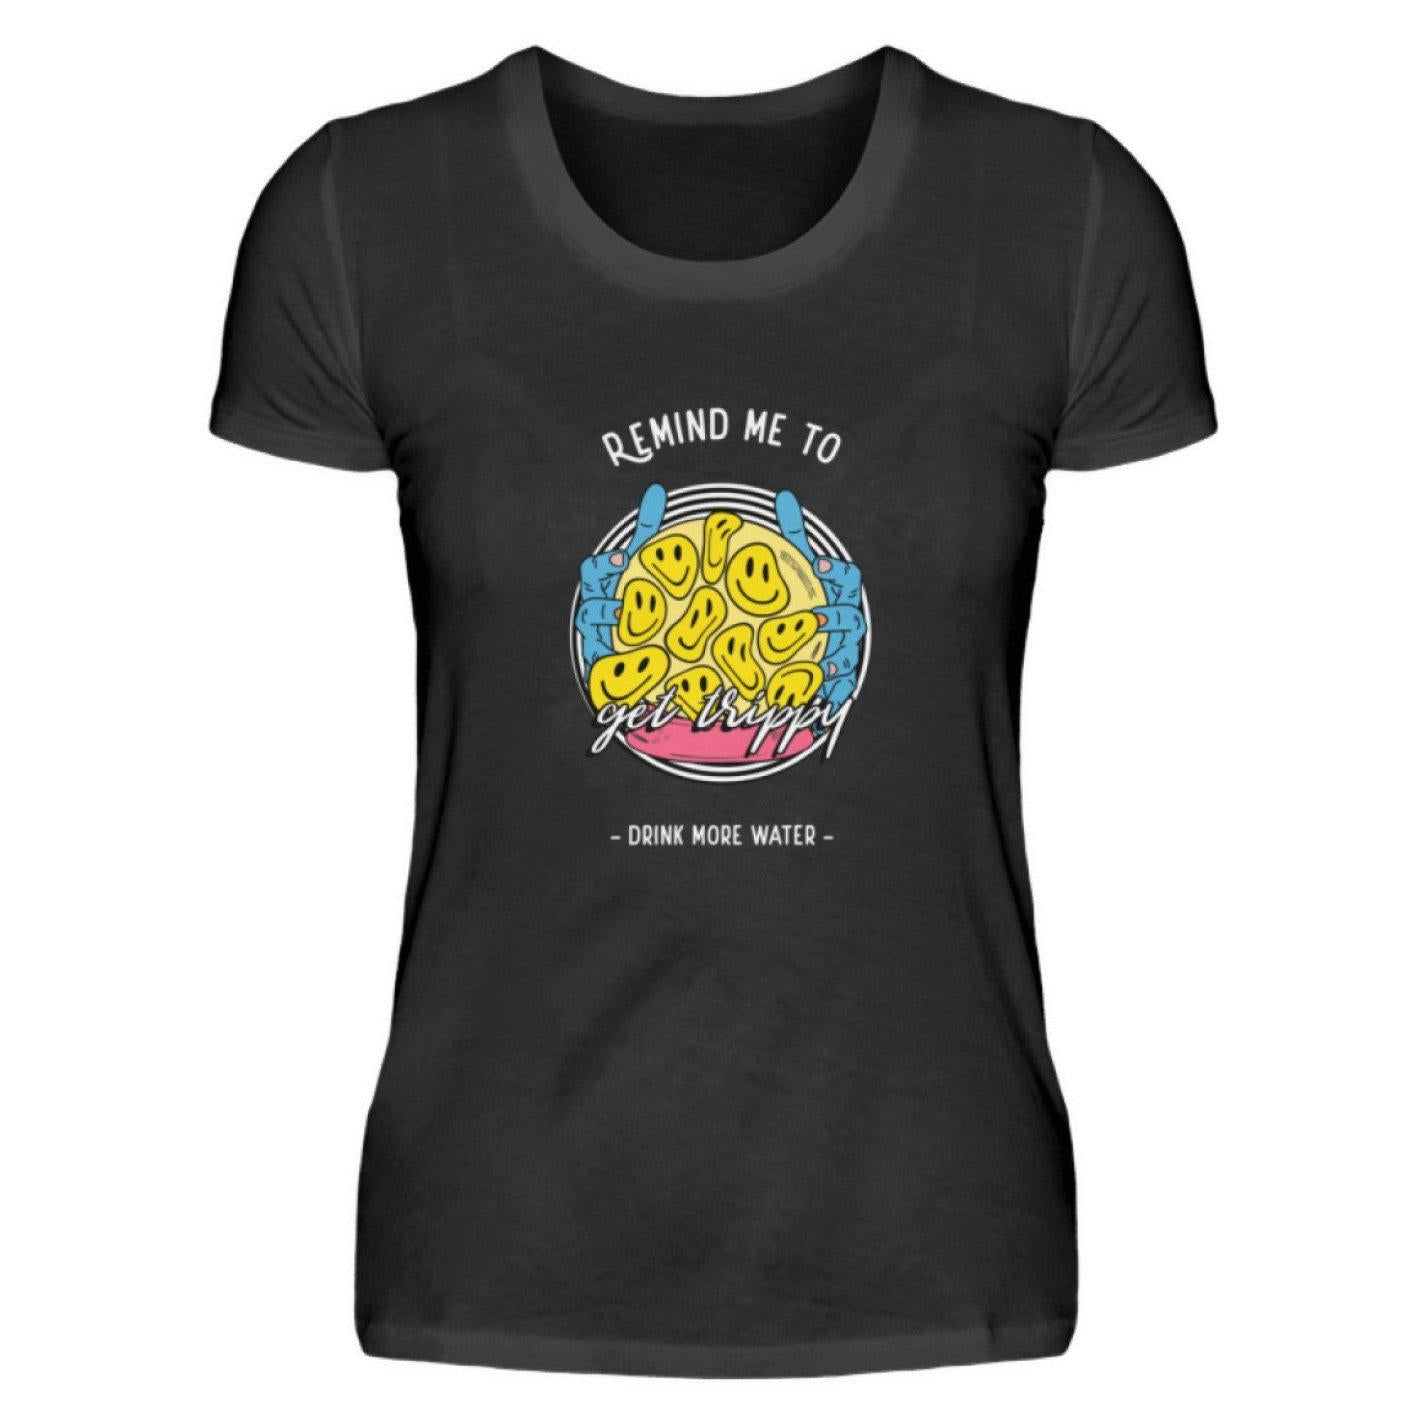 Get trippy - Remind me - Rave On!® - Damenshirt Damen Basic T-Shirt Black / S - Rave On!® der Club & Techno Szene Shop für Coole Junge Mode Streetwear Style & Fashion Outfits + Sexy Festival 420 Stuff